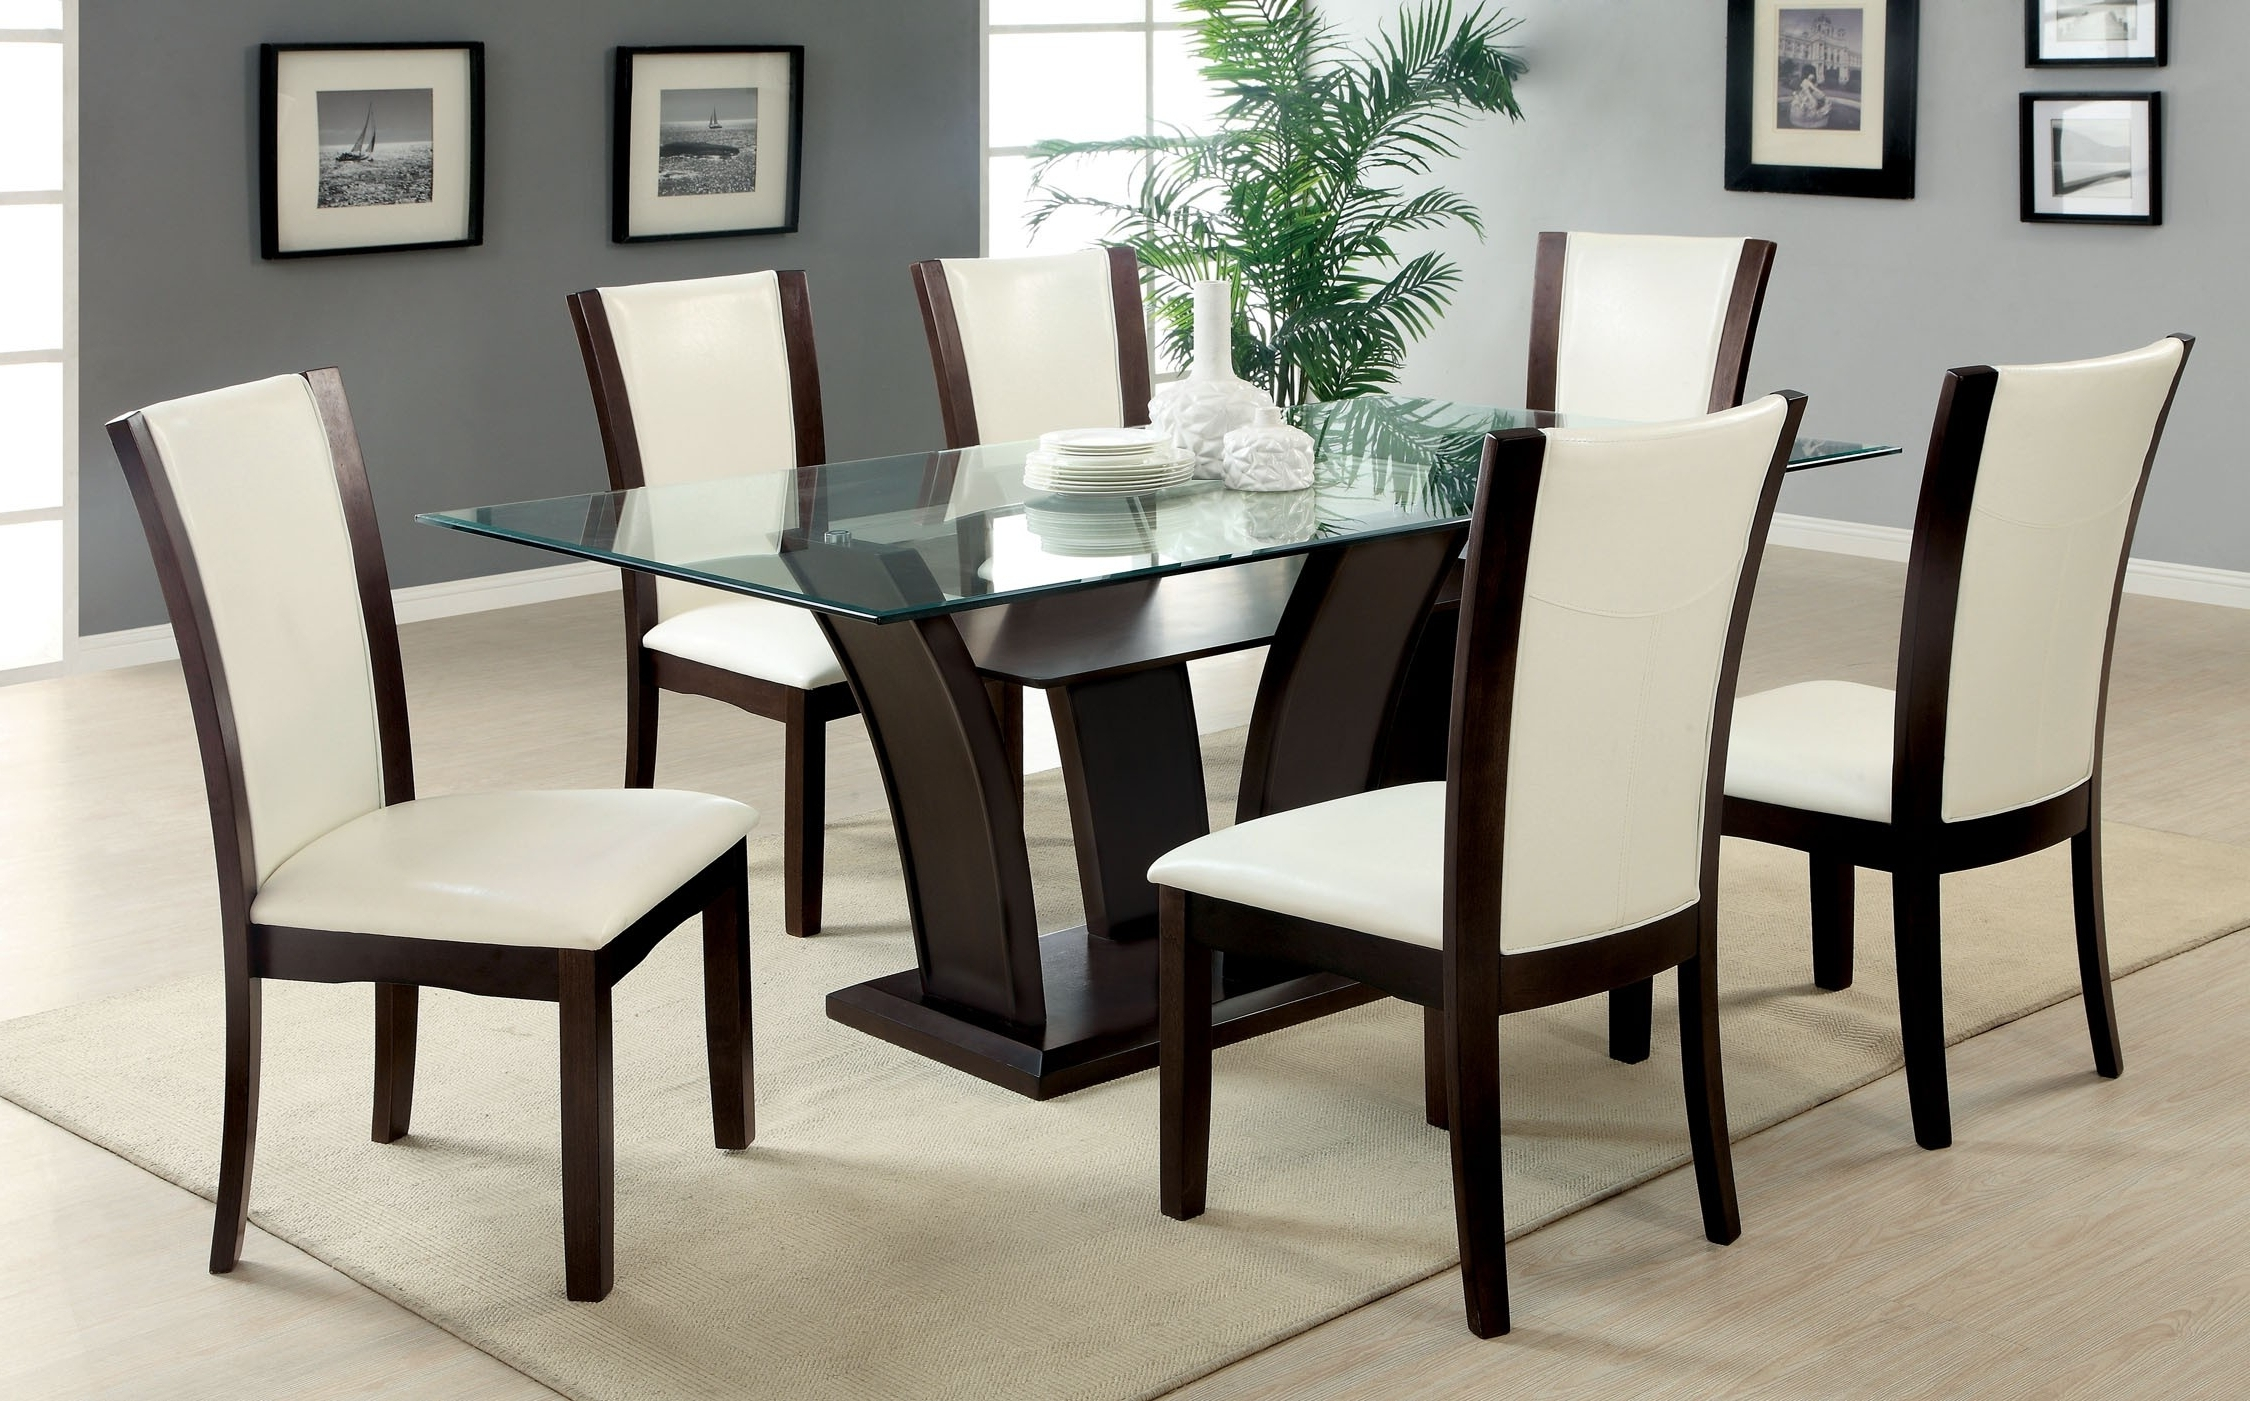 6 Seater Glass Dining Table Sets • Table Setting Ideas Pertaining To Most Current Glass 6 Seater Dining Tables (Gallery 6 of 25)